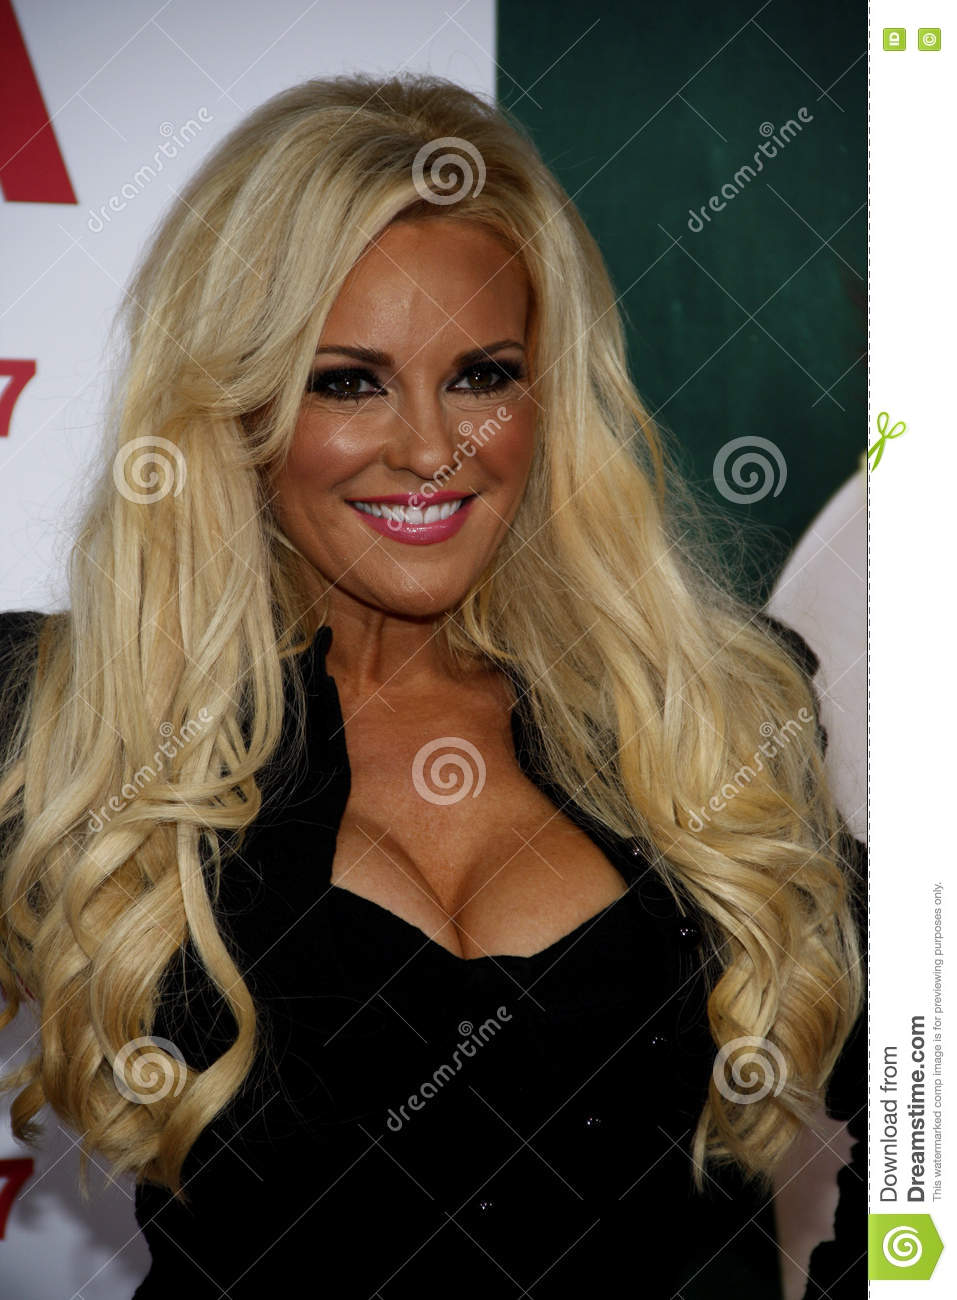 Watch Bridget Marquardt United States video